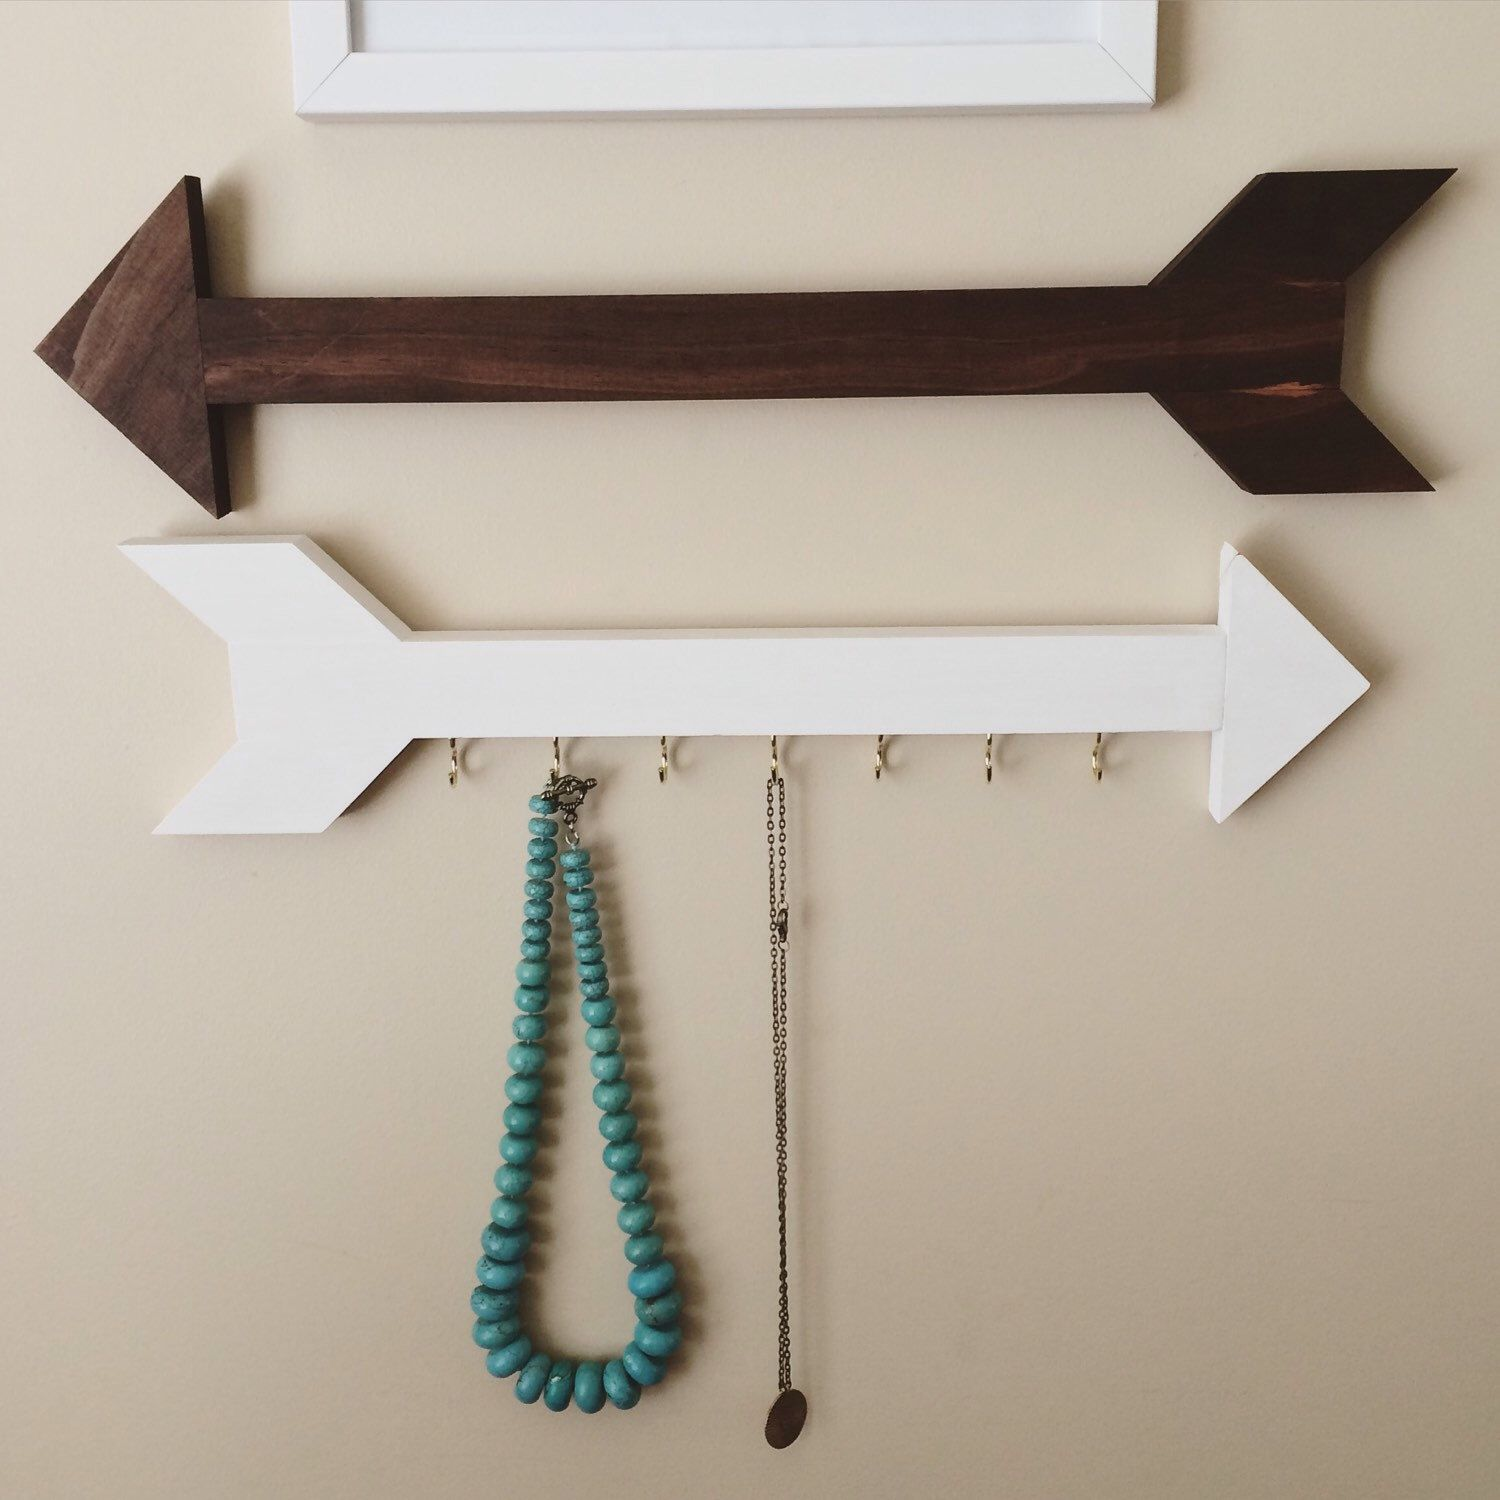 Wood arrows for gallery wall jewelry organizer necklace hanger